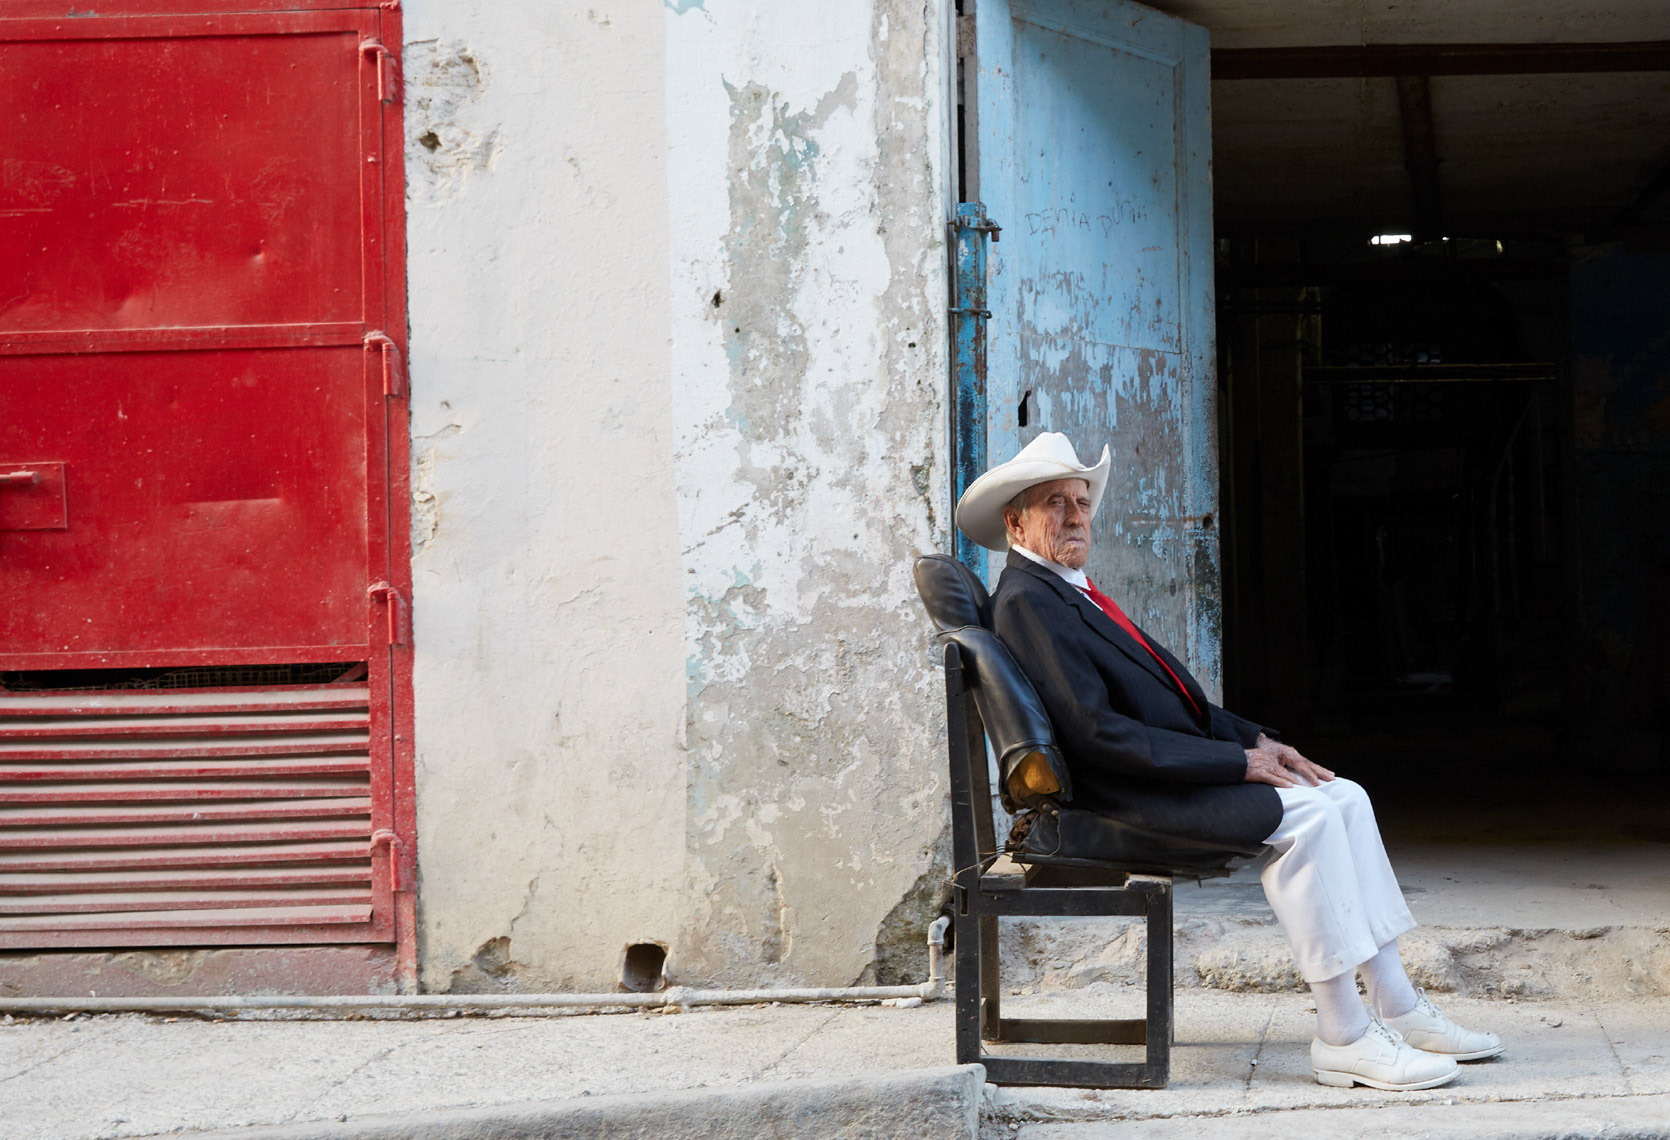 Cuban man sitting in old torn chair on sidewalk next to building with red white and blue walls